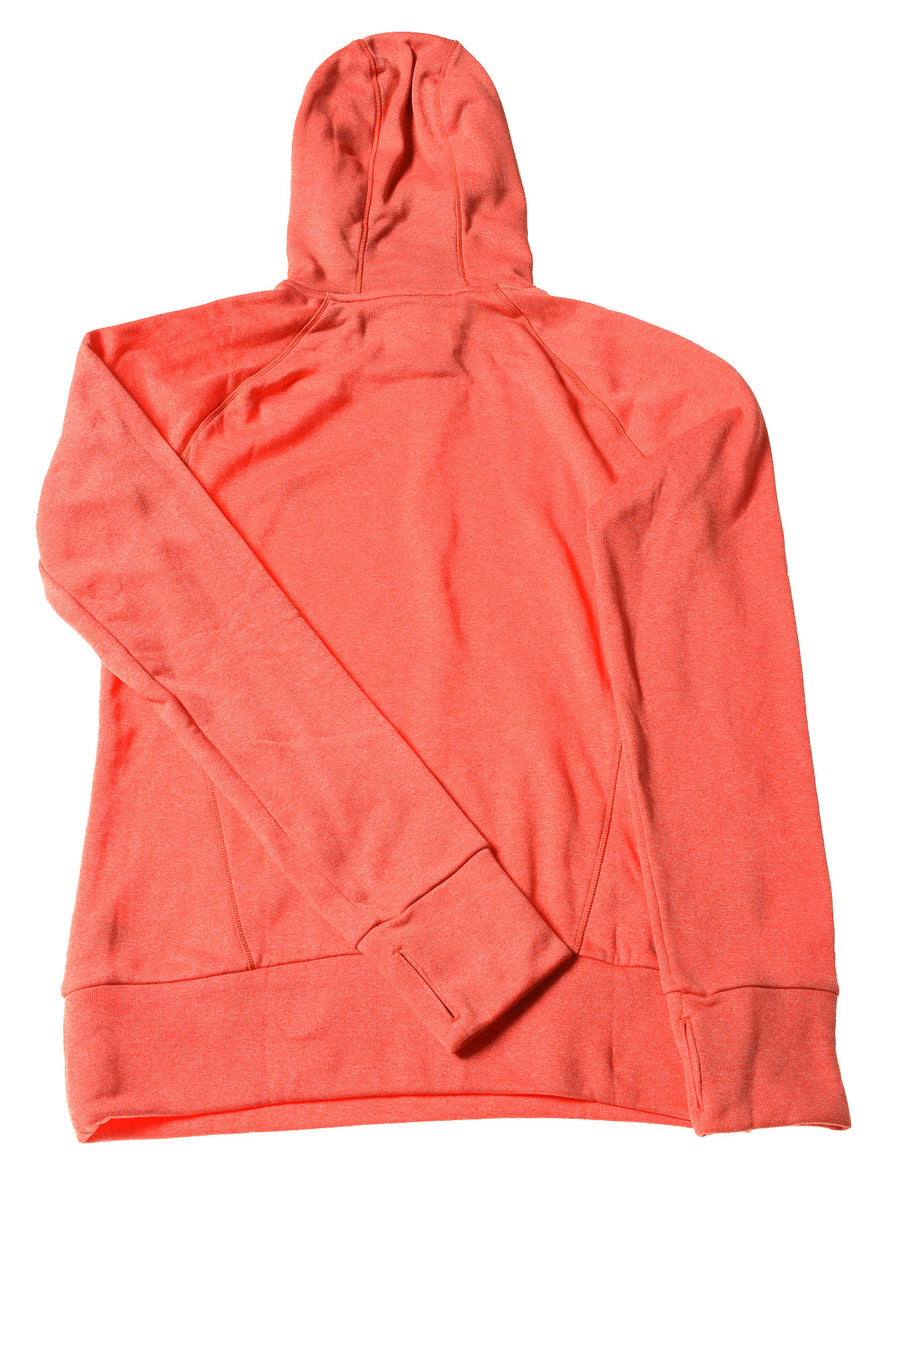 USED Adidas Women's Top Medium Orange